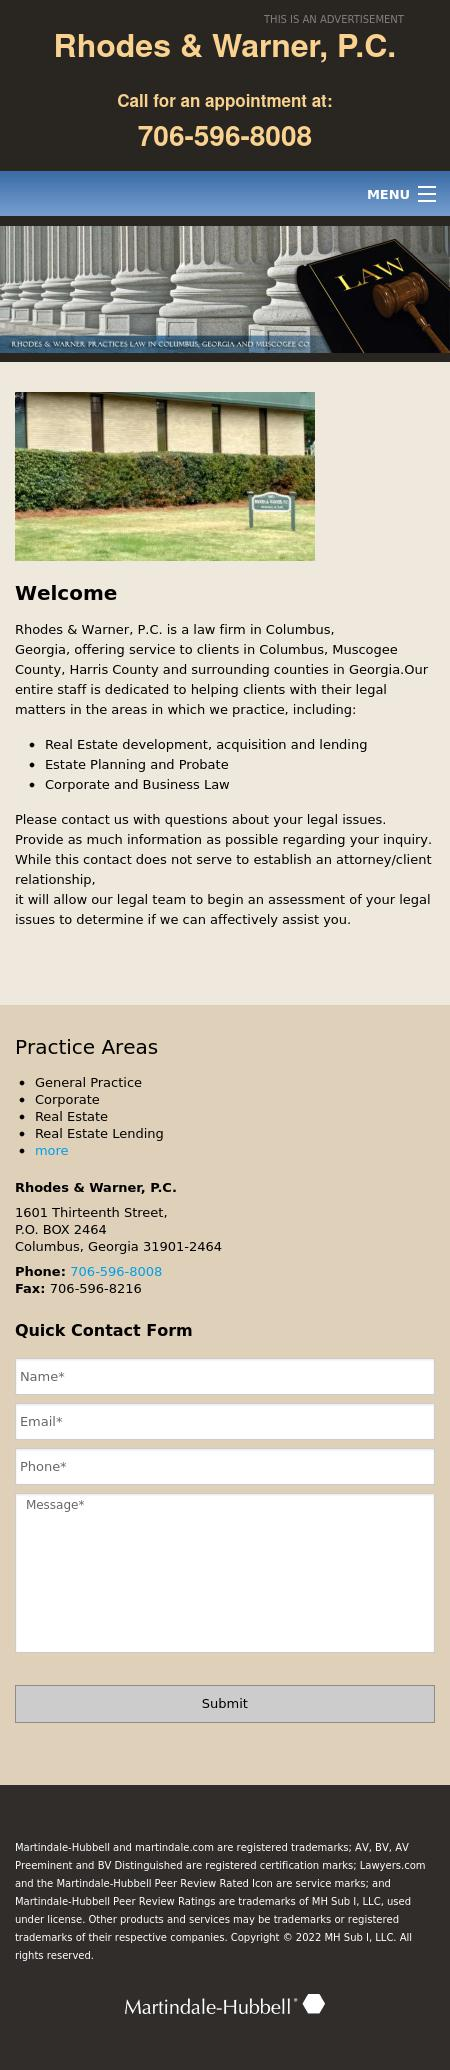 Rhodes & Warner PC - Columbus GA Lawyers